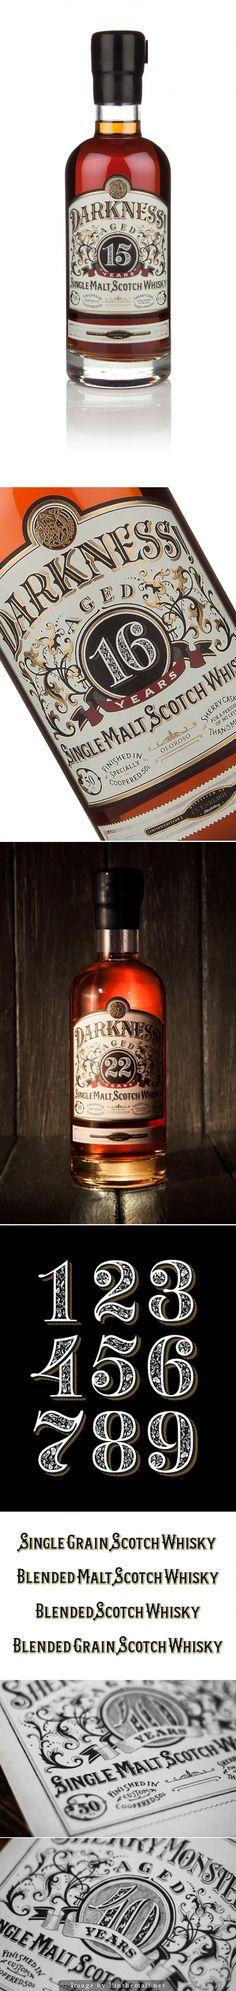 Darkness #Whisky, Designer: Ginger Monkey - http://www.packagingoftheworld.com/2014/10/darkness-whisky.html